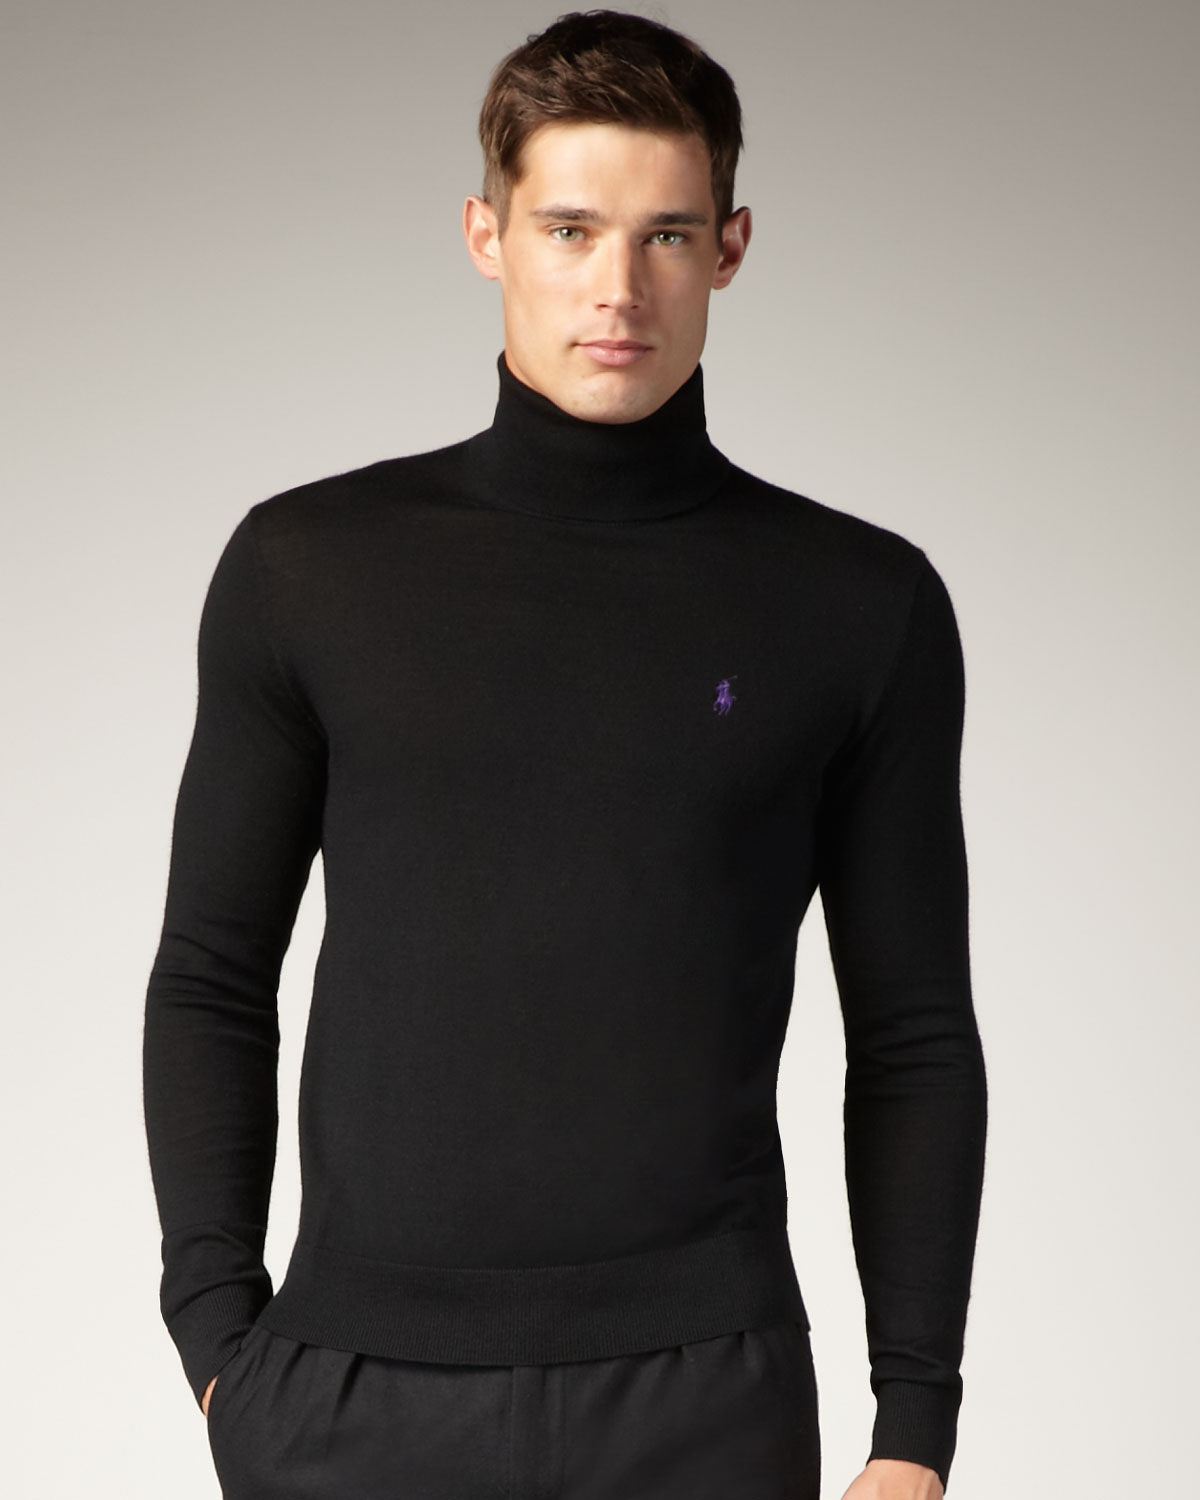 Ralph Lauren Turtleneck Sweater - Long Sweater Jacket